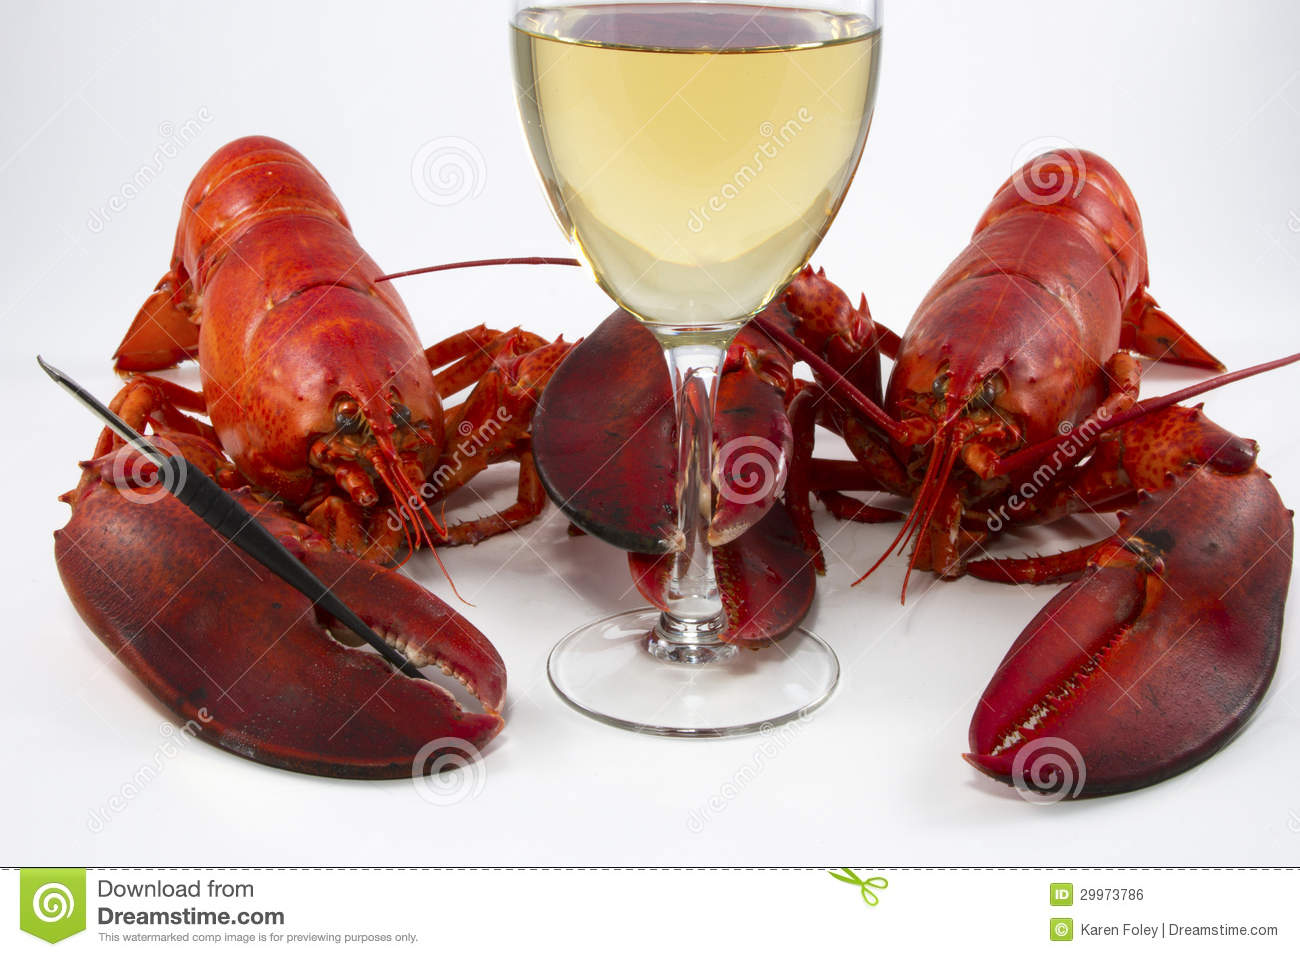 Two Lobsters Wine Glass Royalty Free Stock Image - Image: 29973786